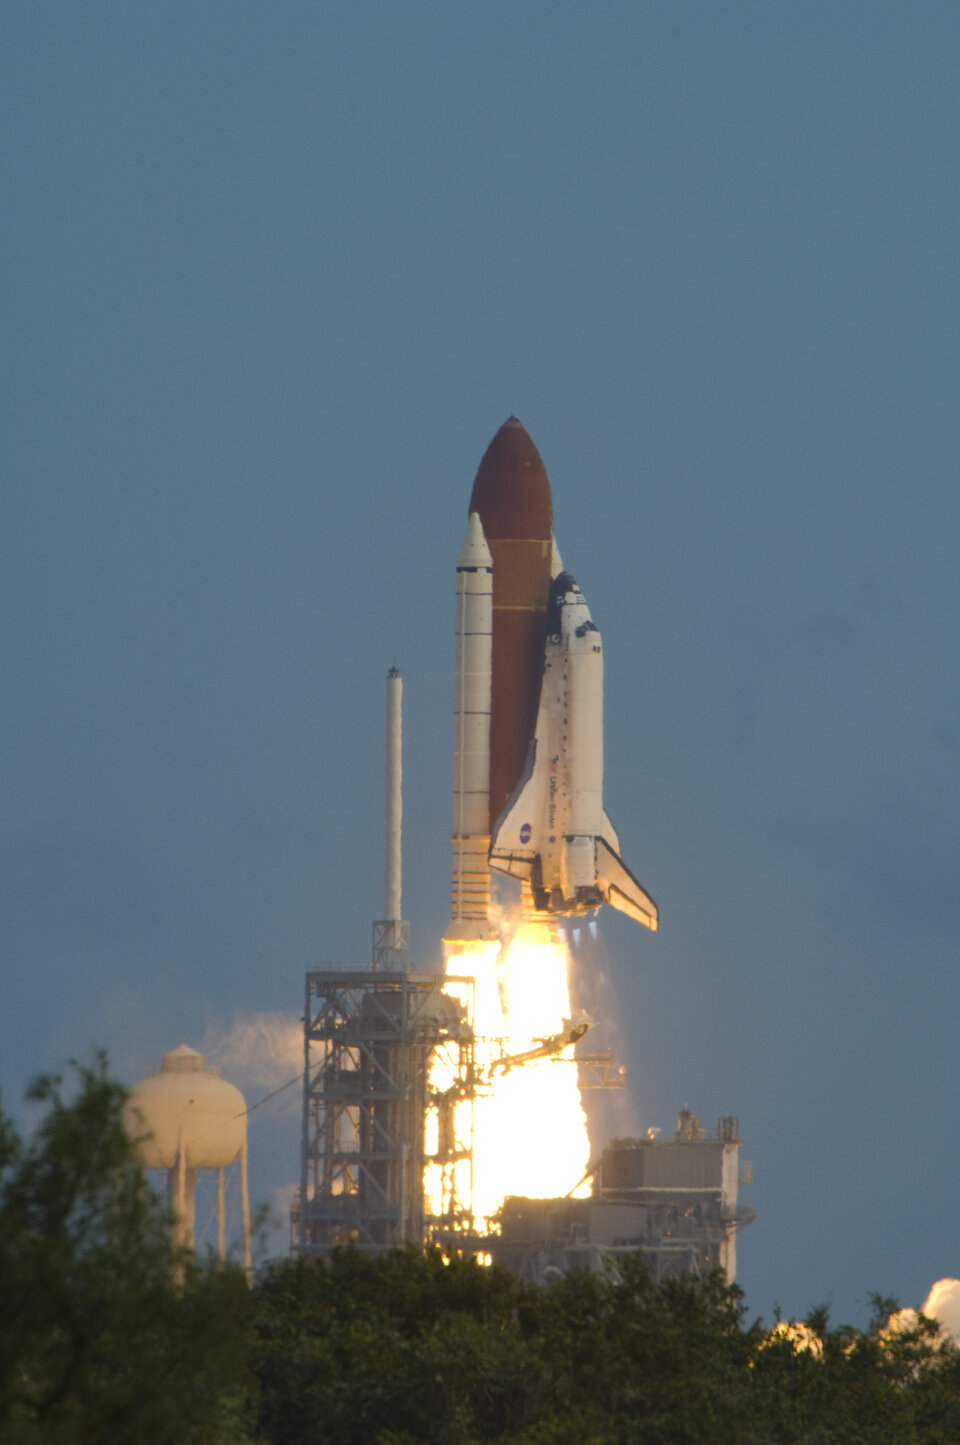 Lift off! Poalo flew on the Space Shuttle Discovery on his first mission